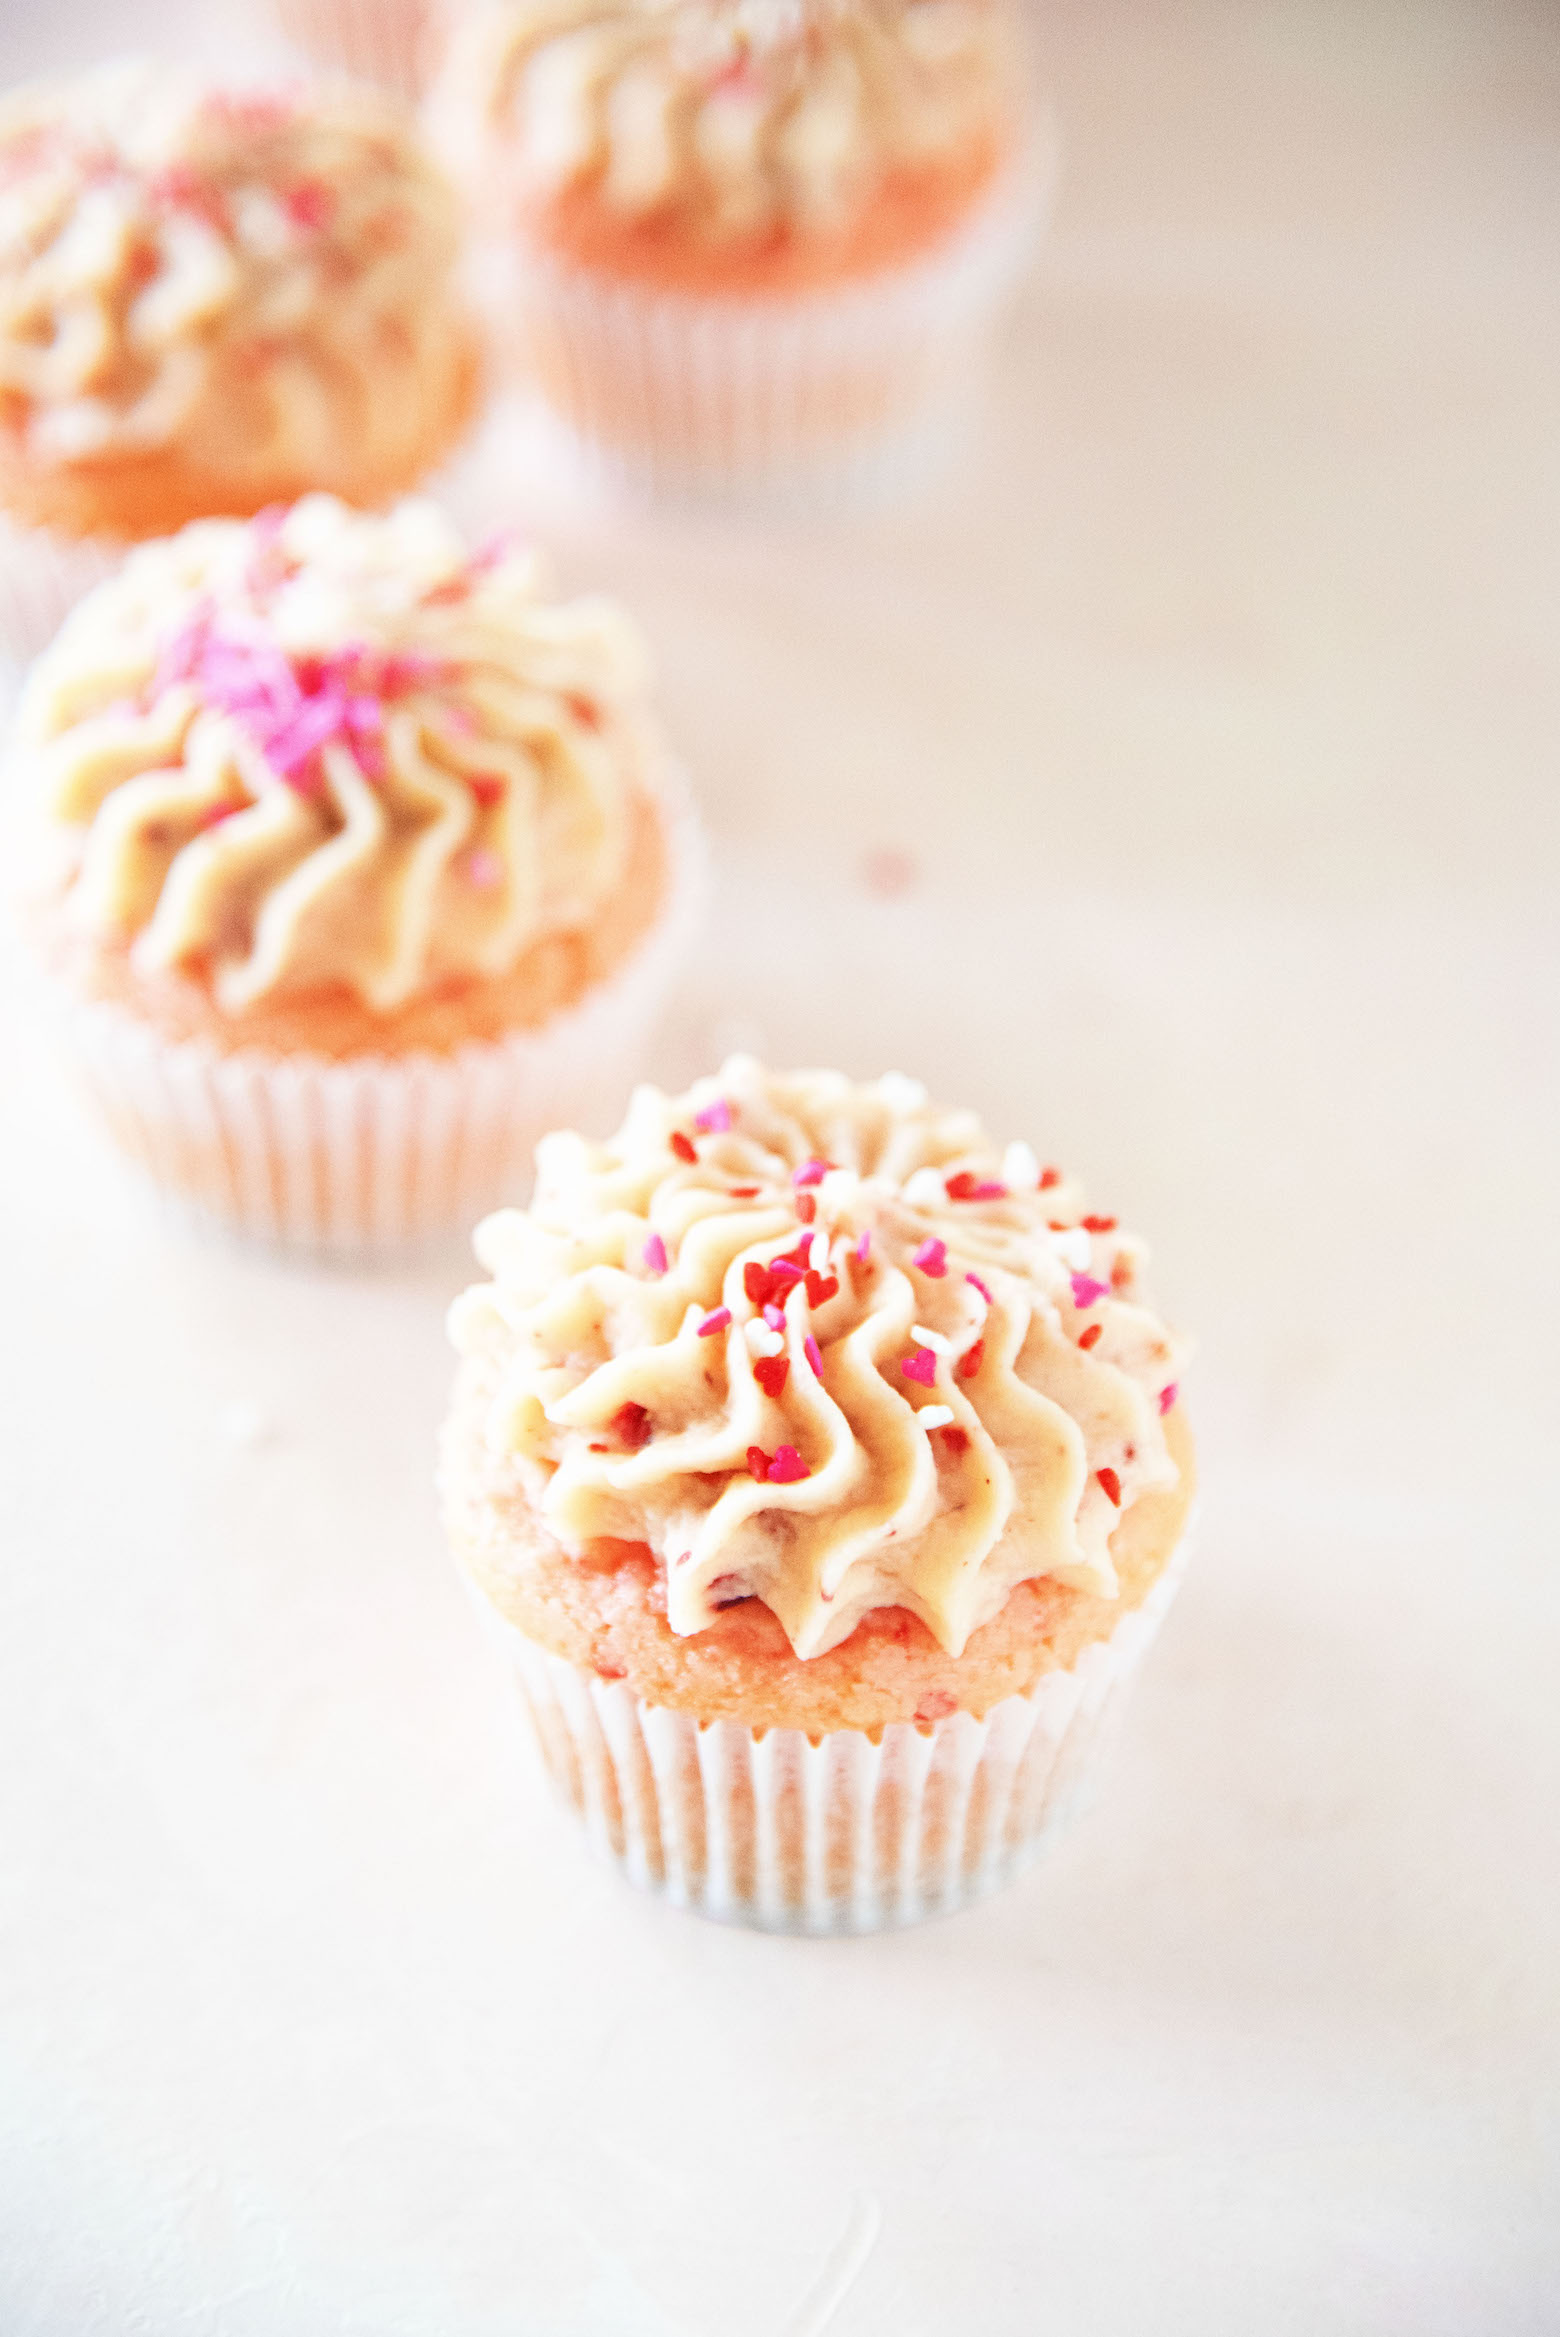 Strawberry Malted Milk Cupcakes